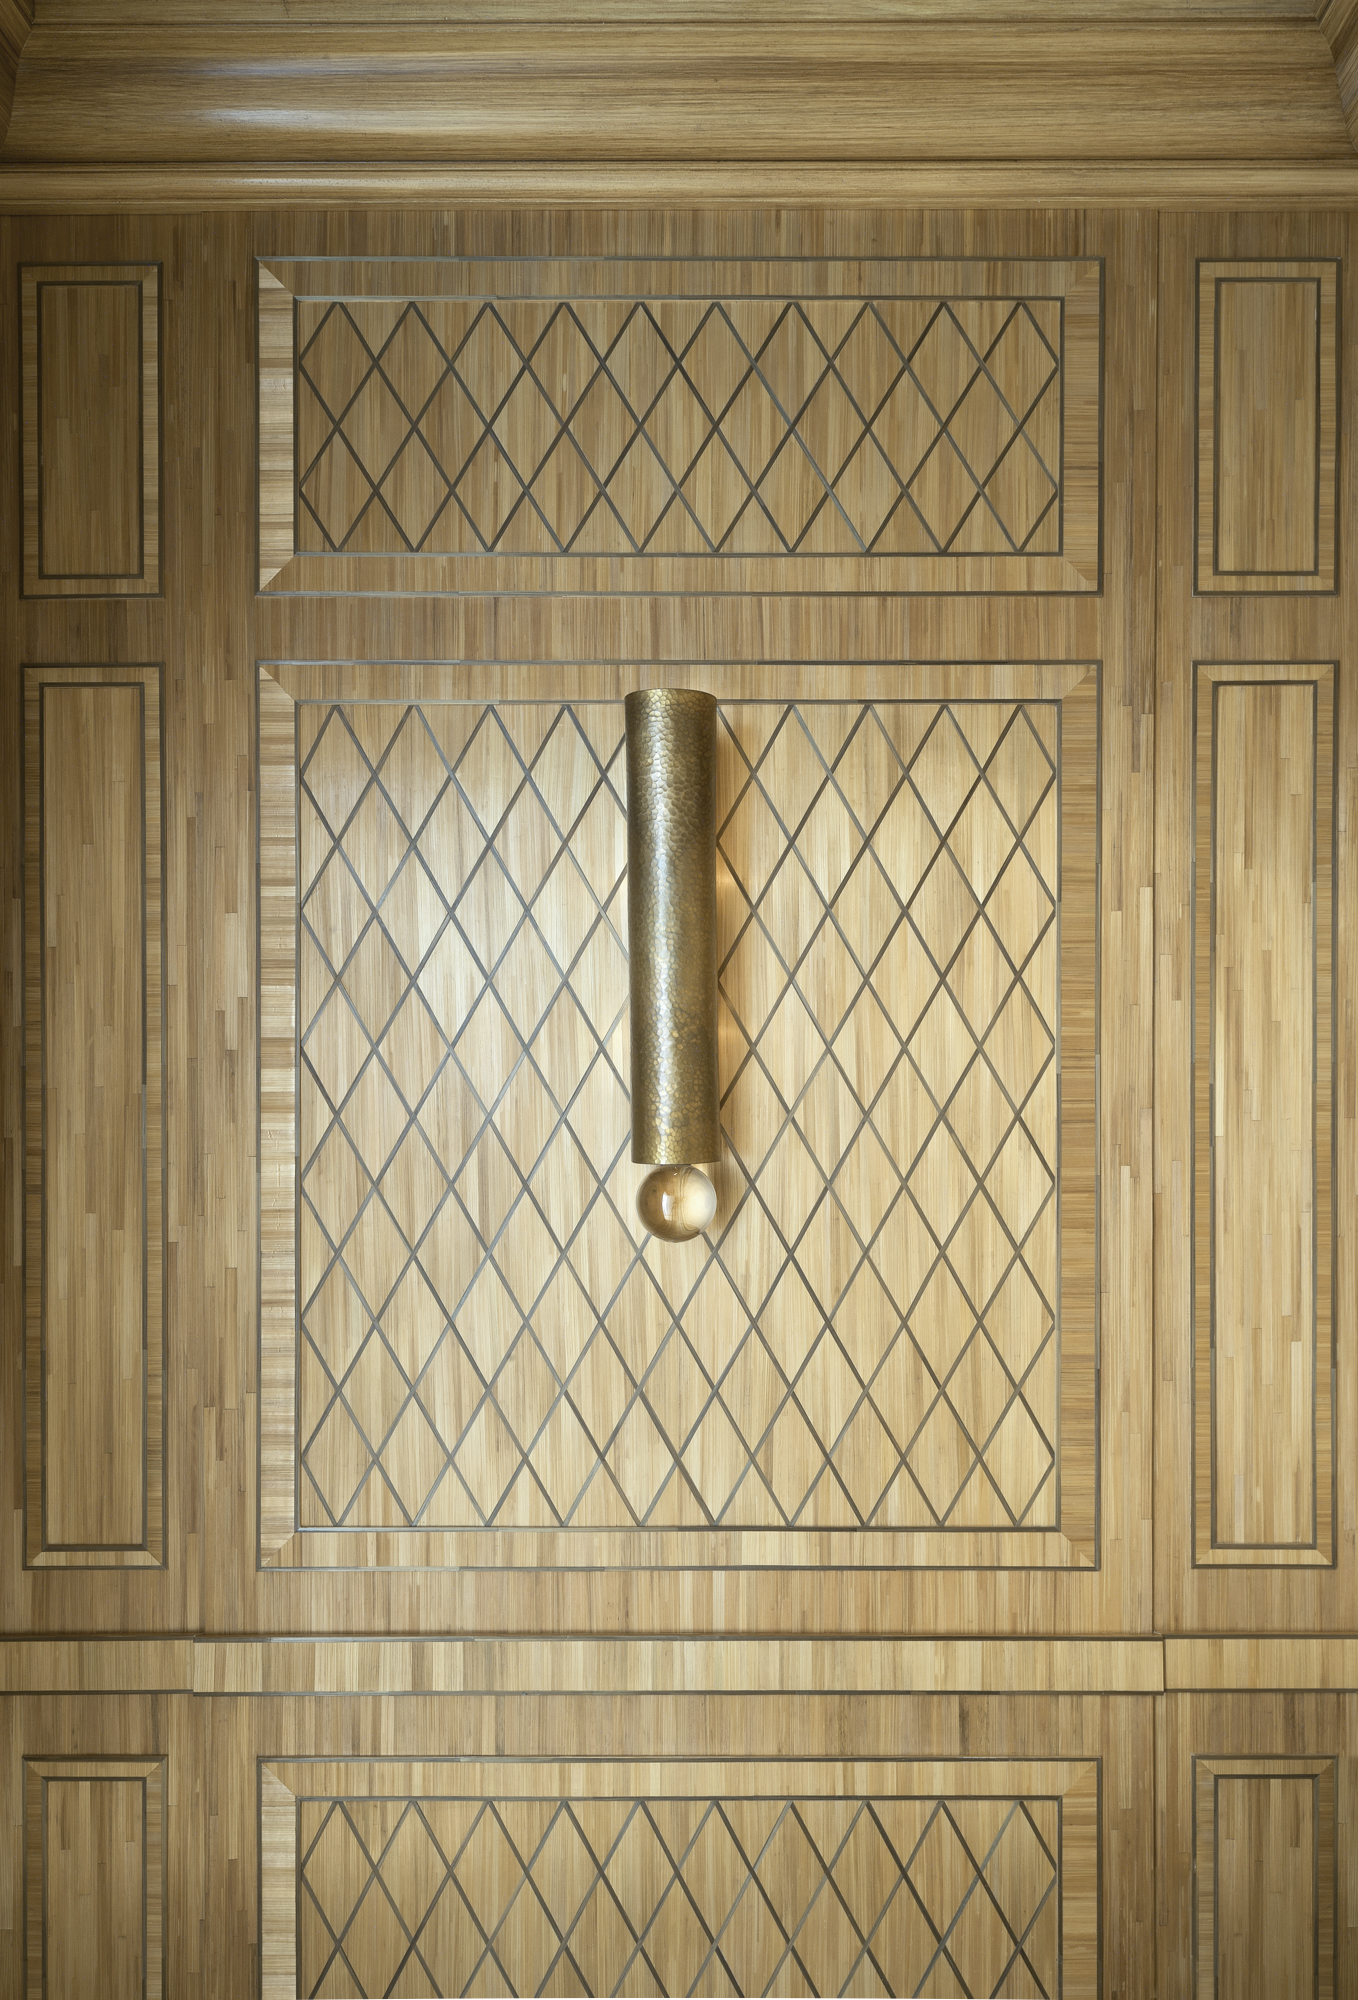 Luxurious bathroom decor, straw marquetry inspired by J.-M. Frank, Art Deco, New York